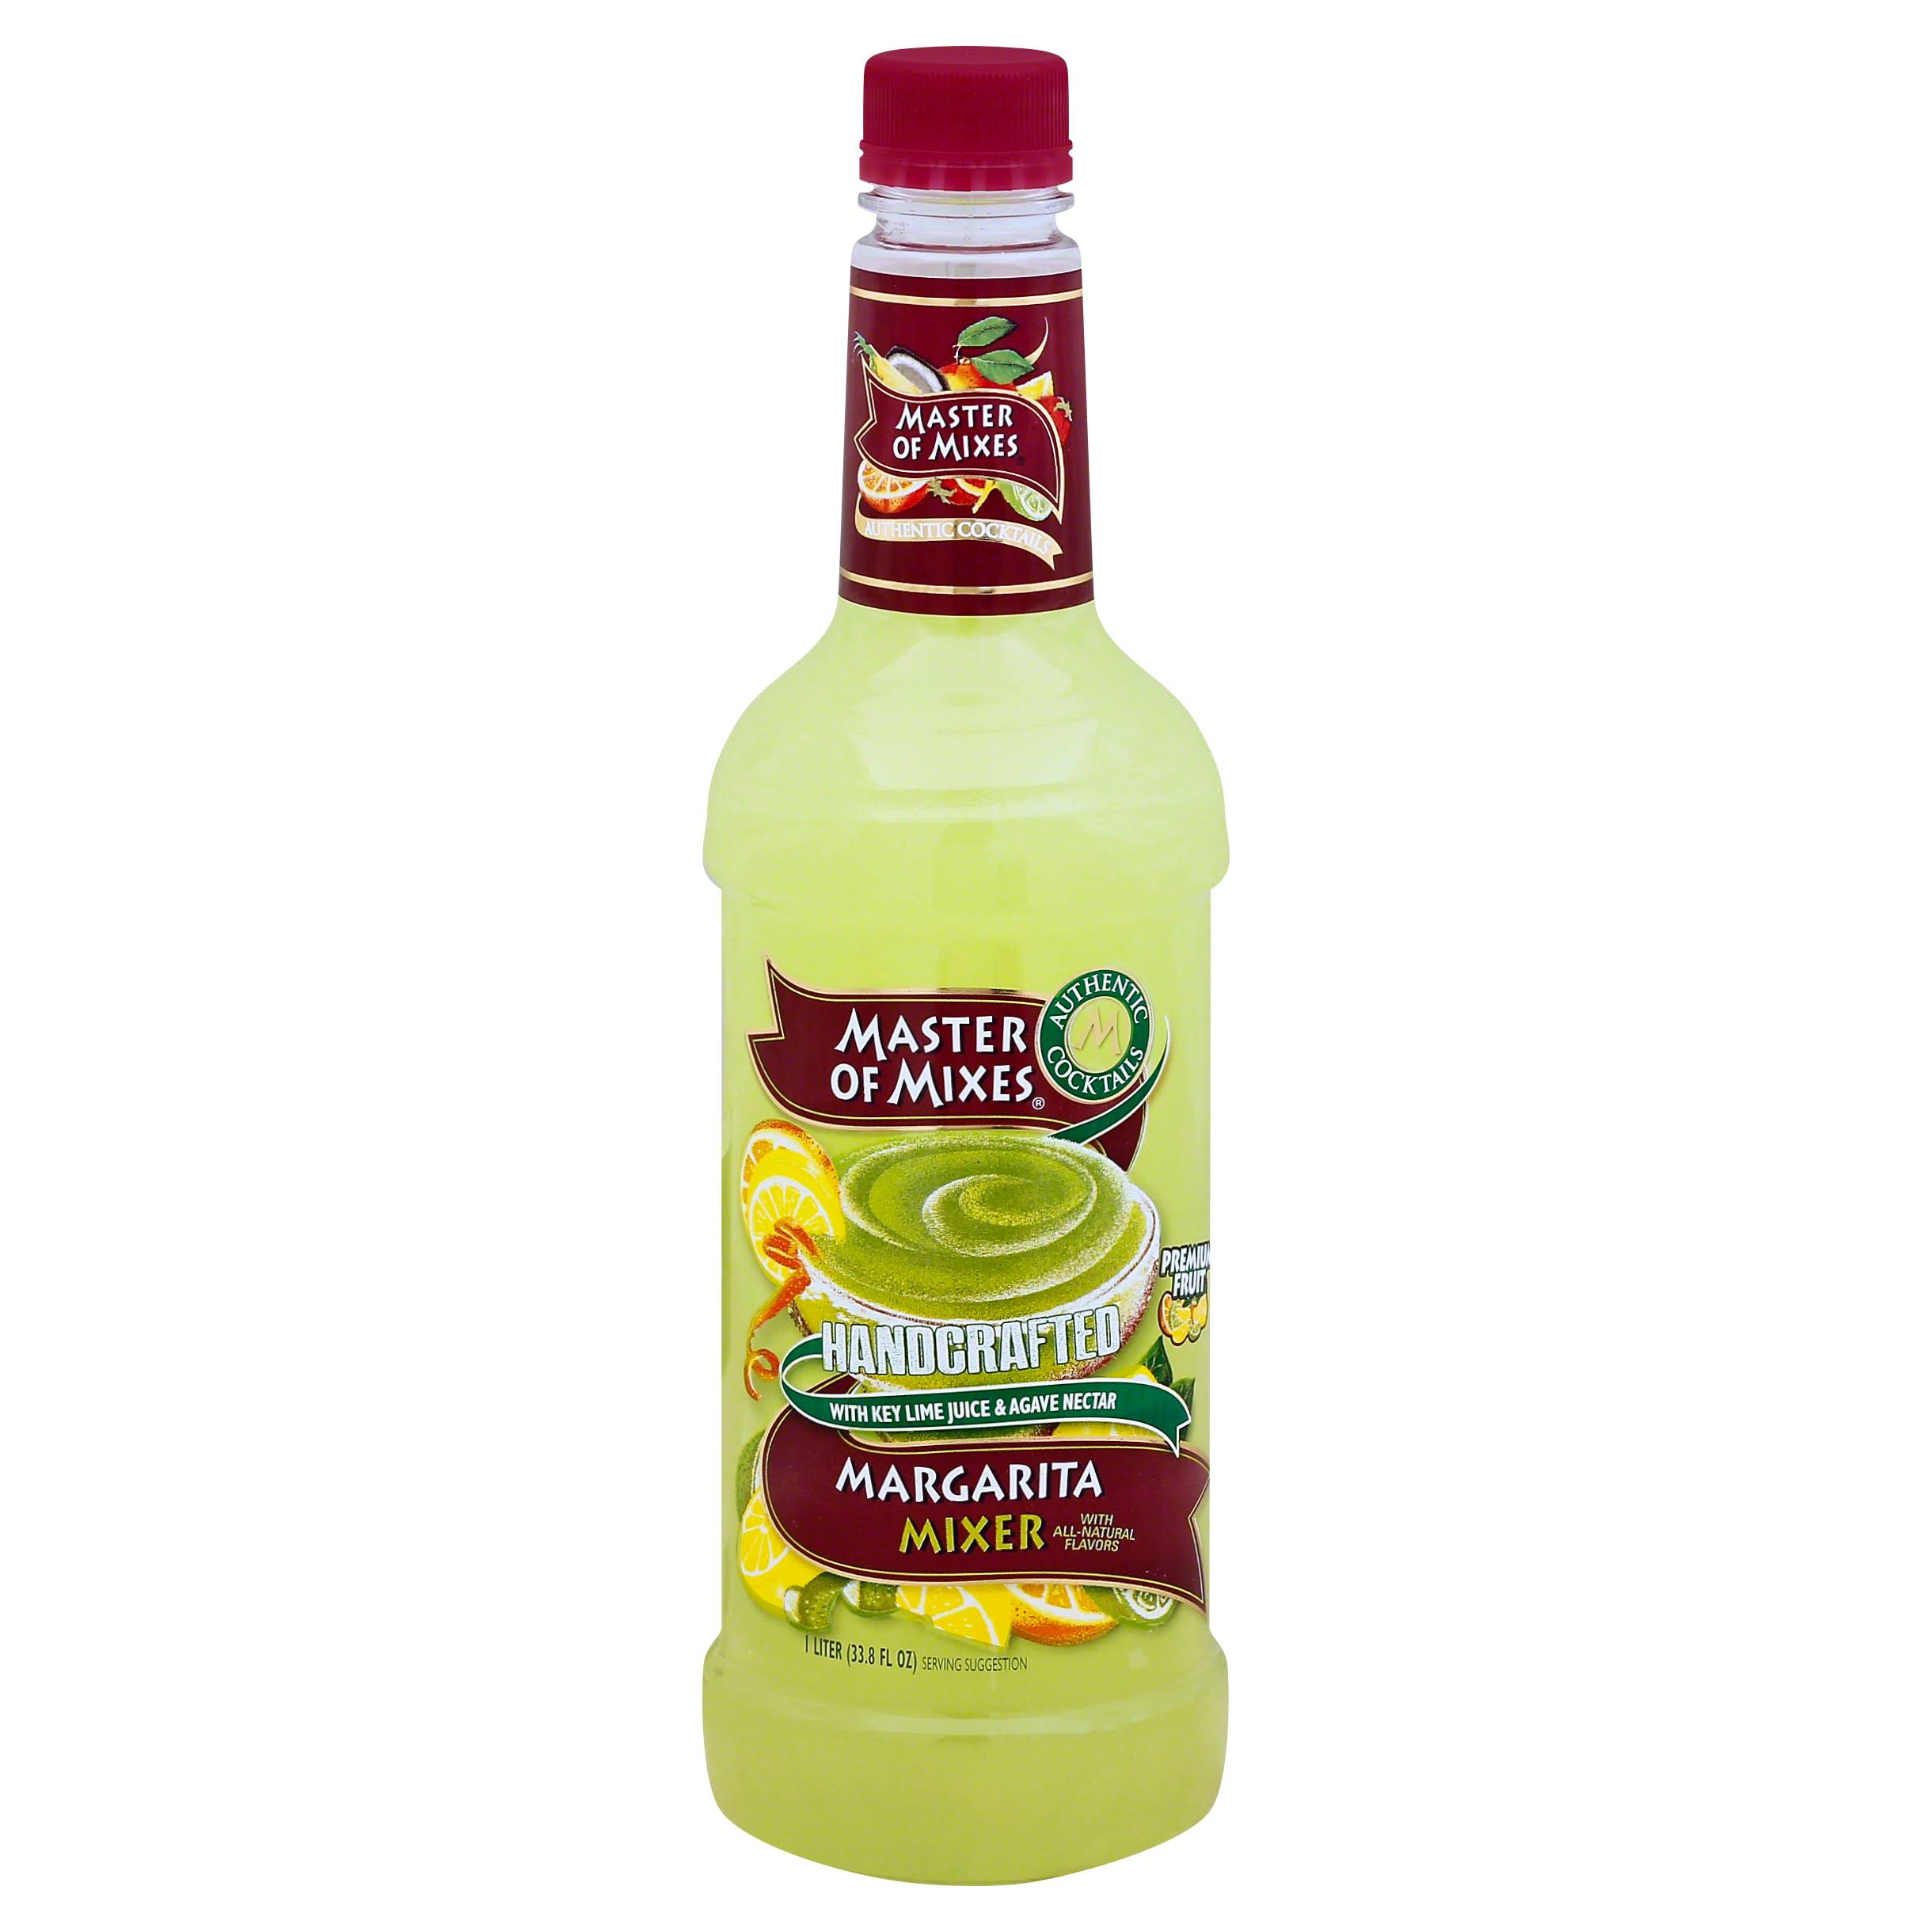 Master of Mixes Mixer, Margarita - 33.8 fl oz